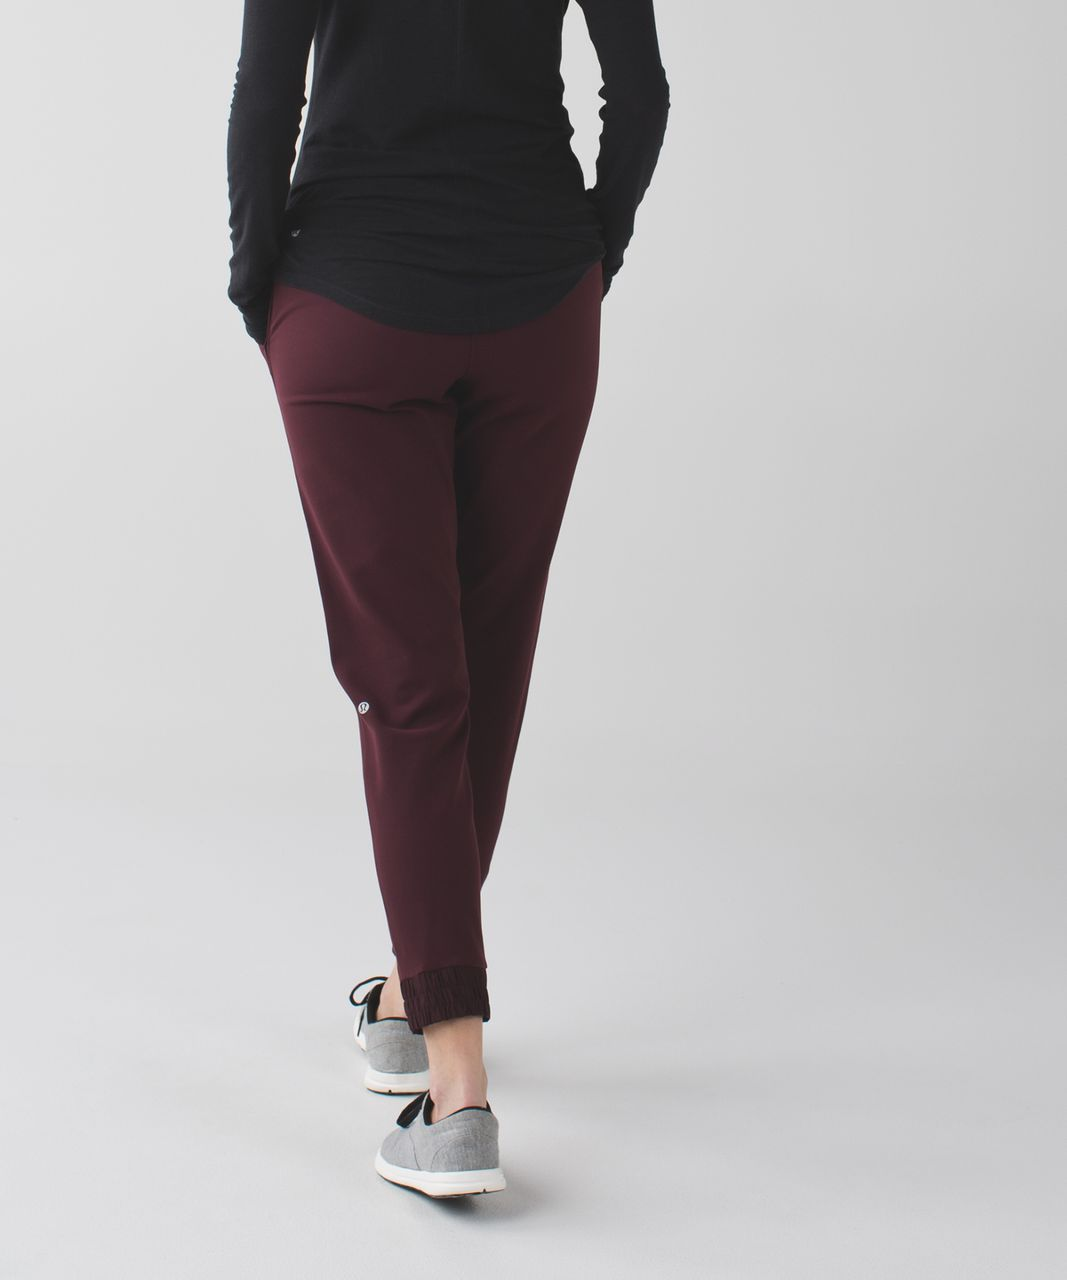 Lululemon Post Barre Pant - Bordeaux Drama